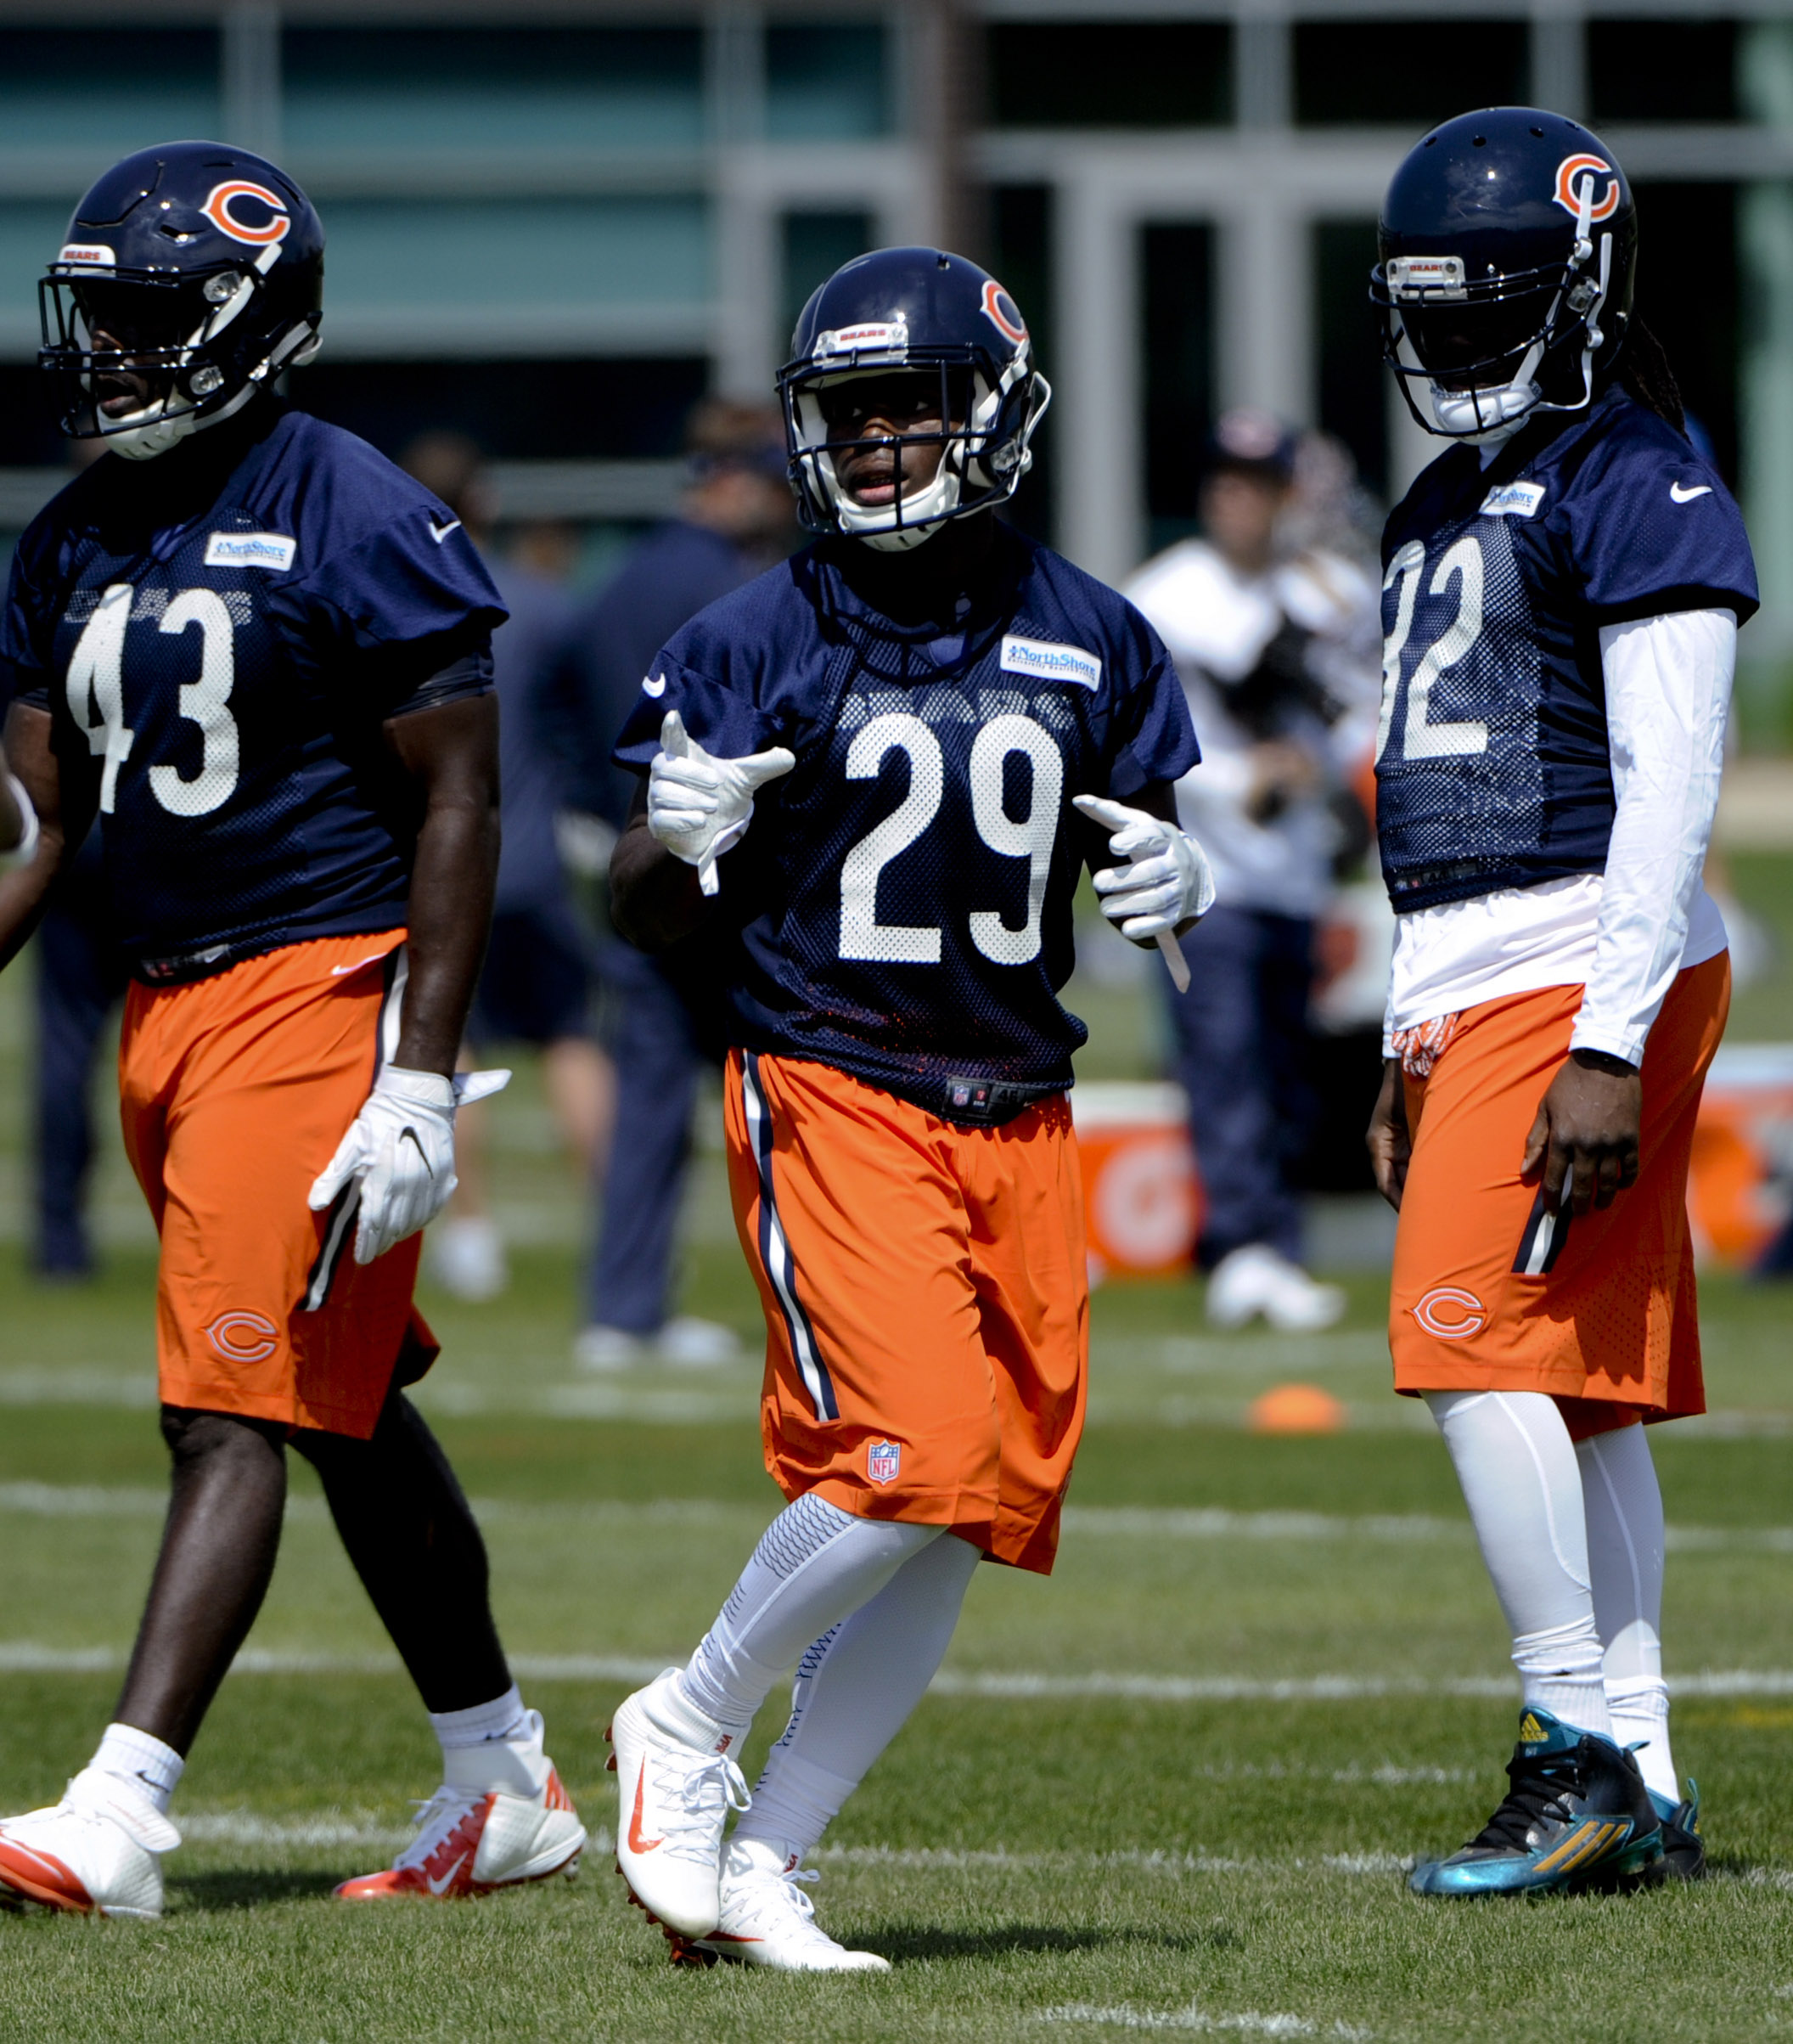 10053244-nfl-chicago-bears-rookie-minicamp